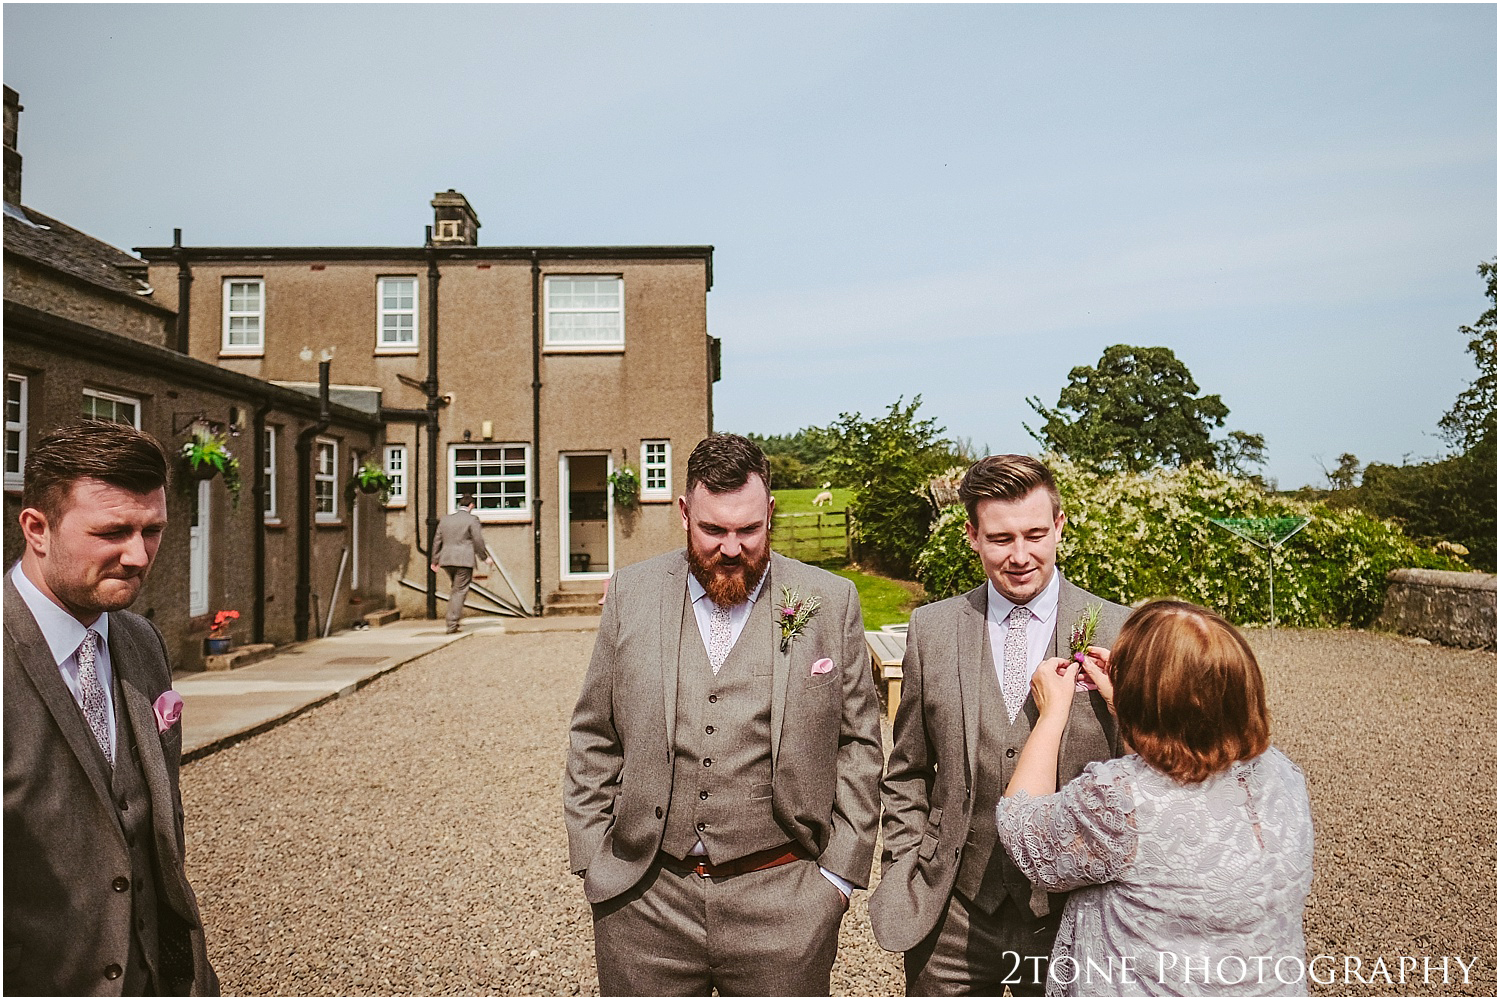 Doxford barns wedding photographer 016.jpg